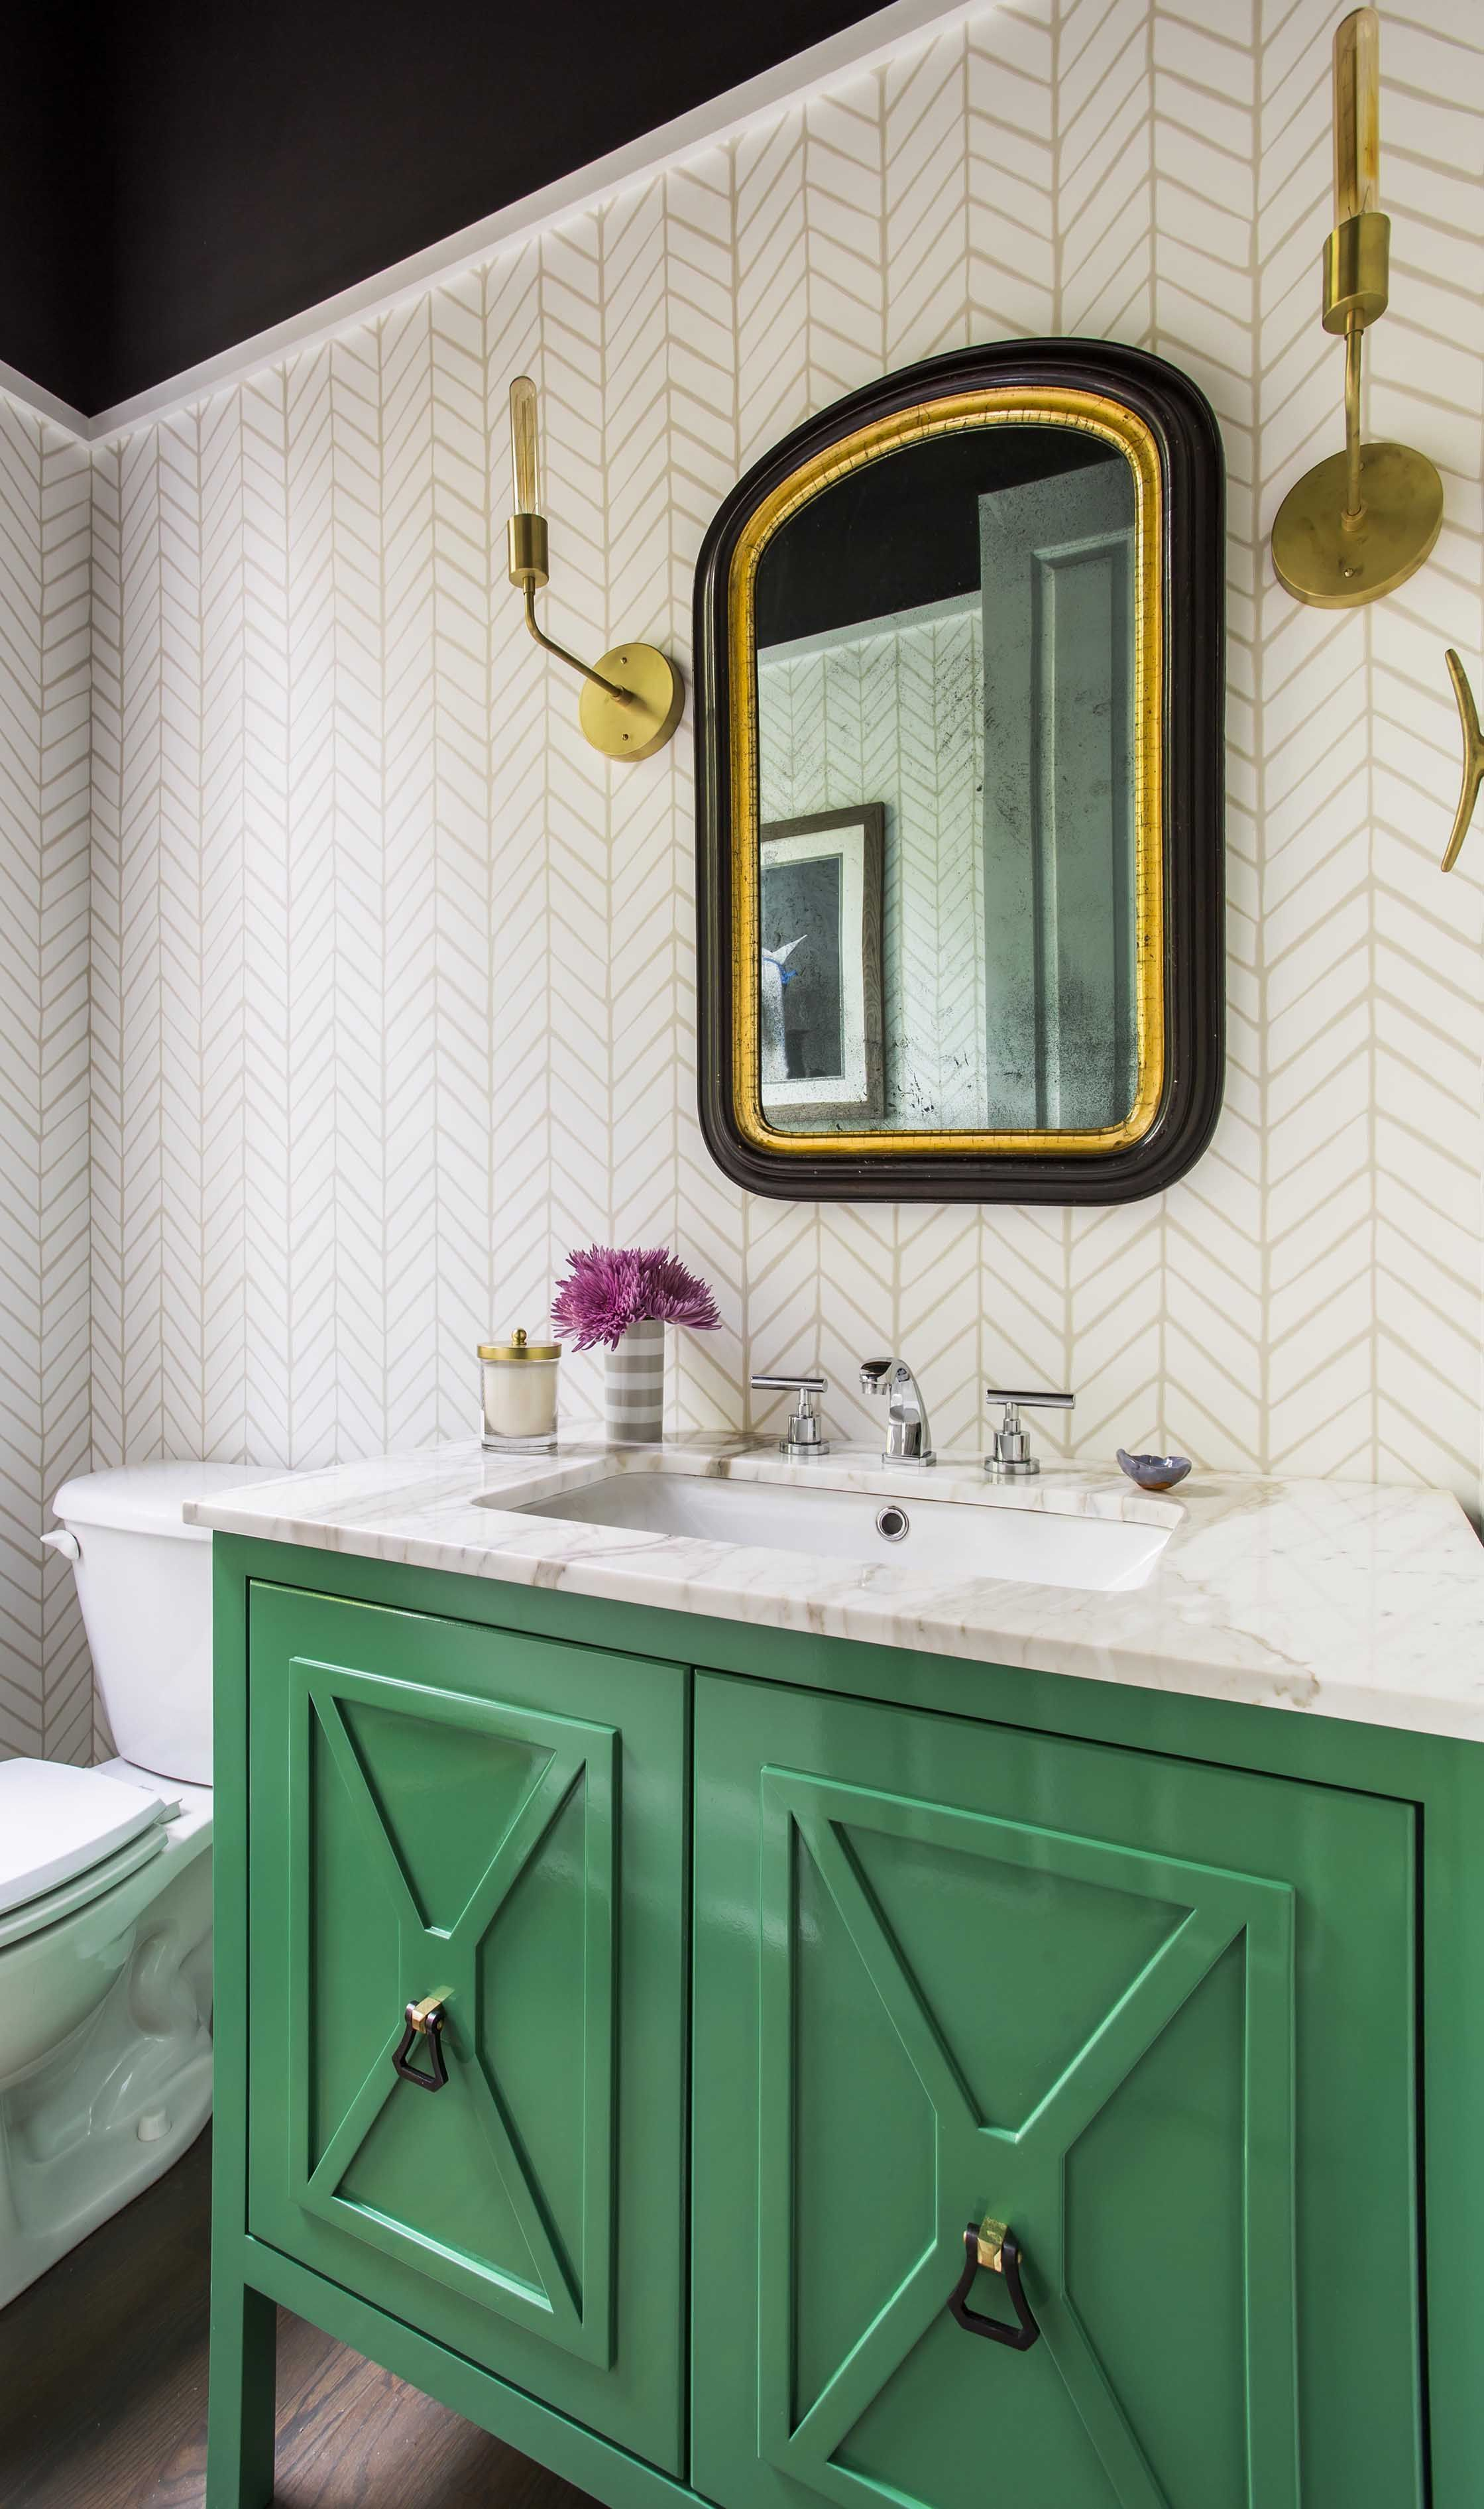 Gorgeous Transitional Bathroom Decor With Green Vanity And Gold